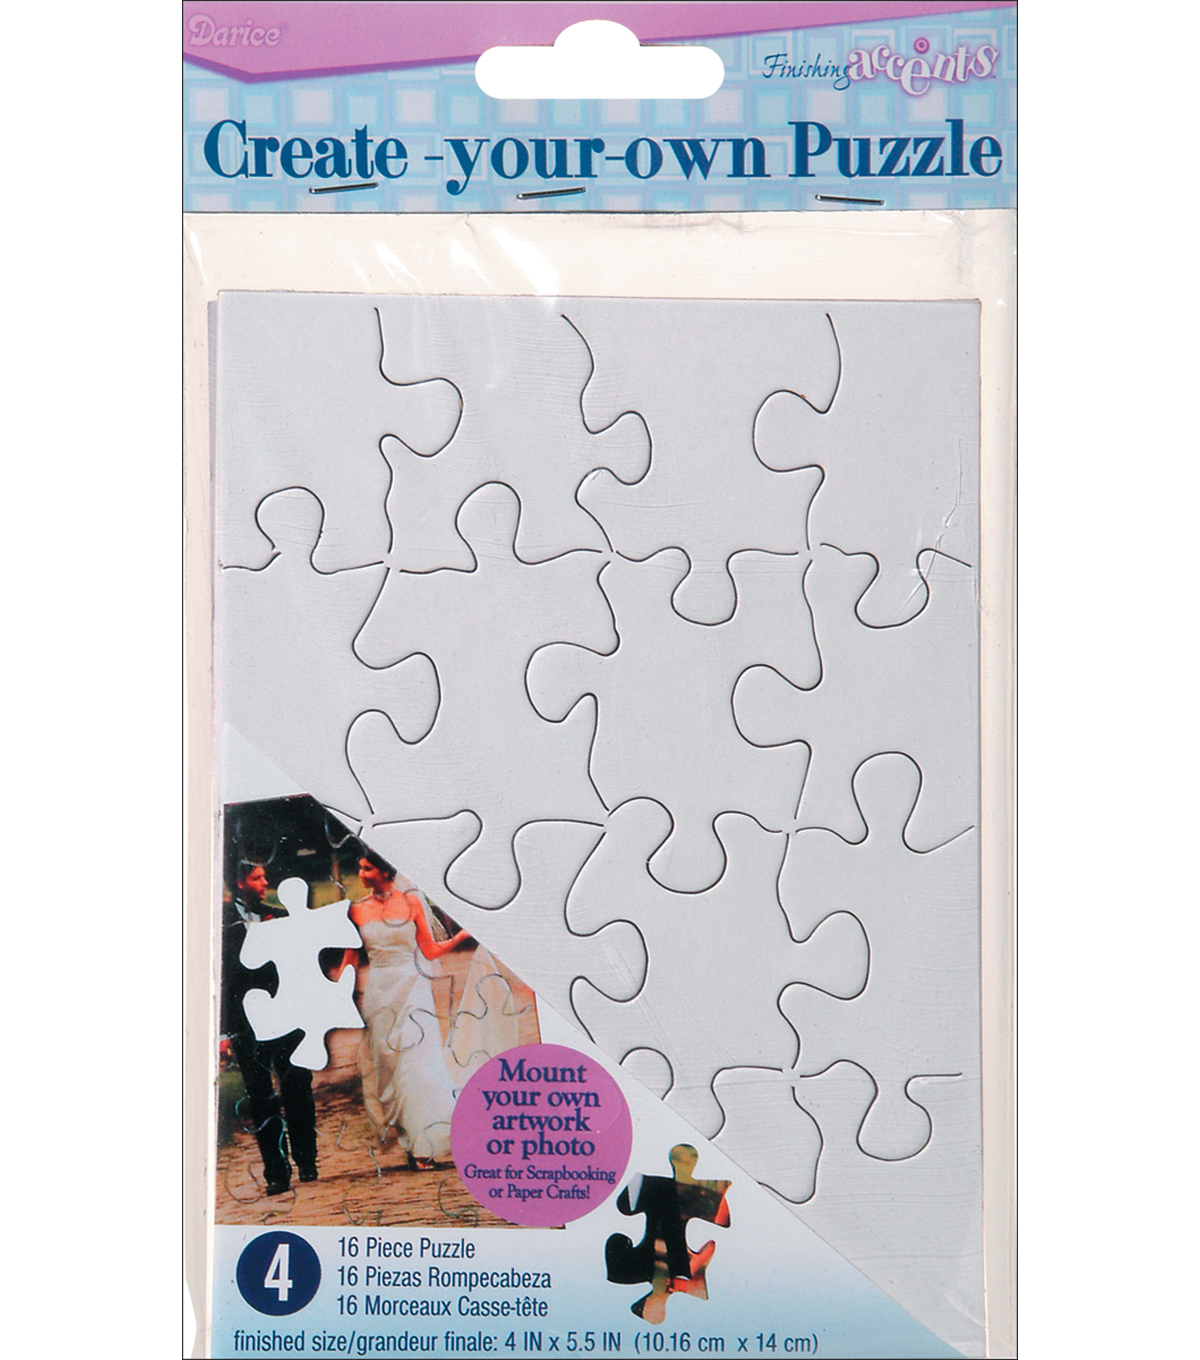 16 Piece Blank Puzzle